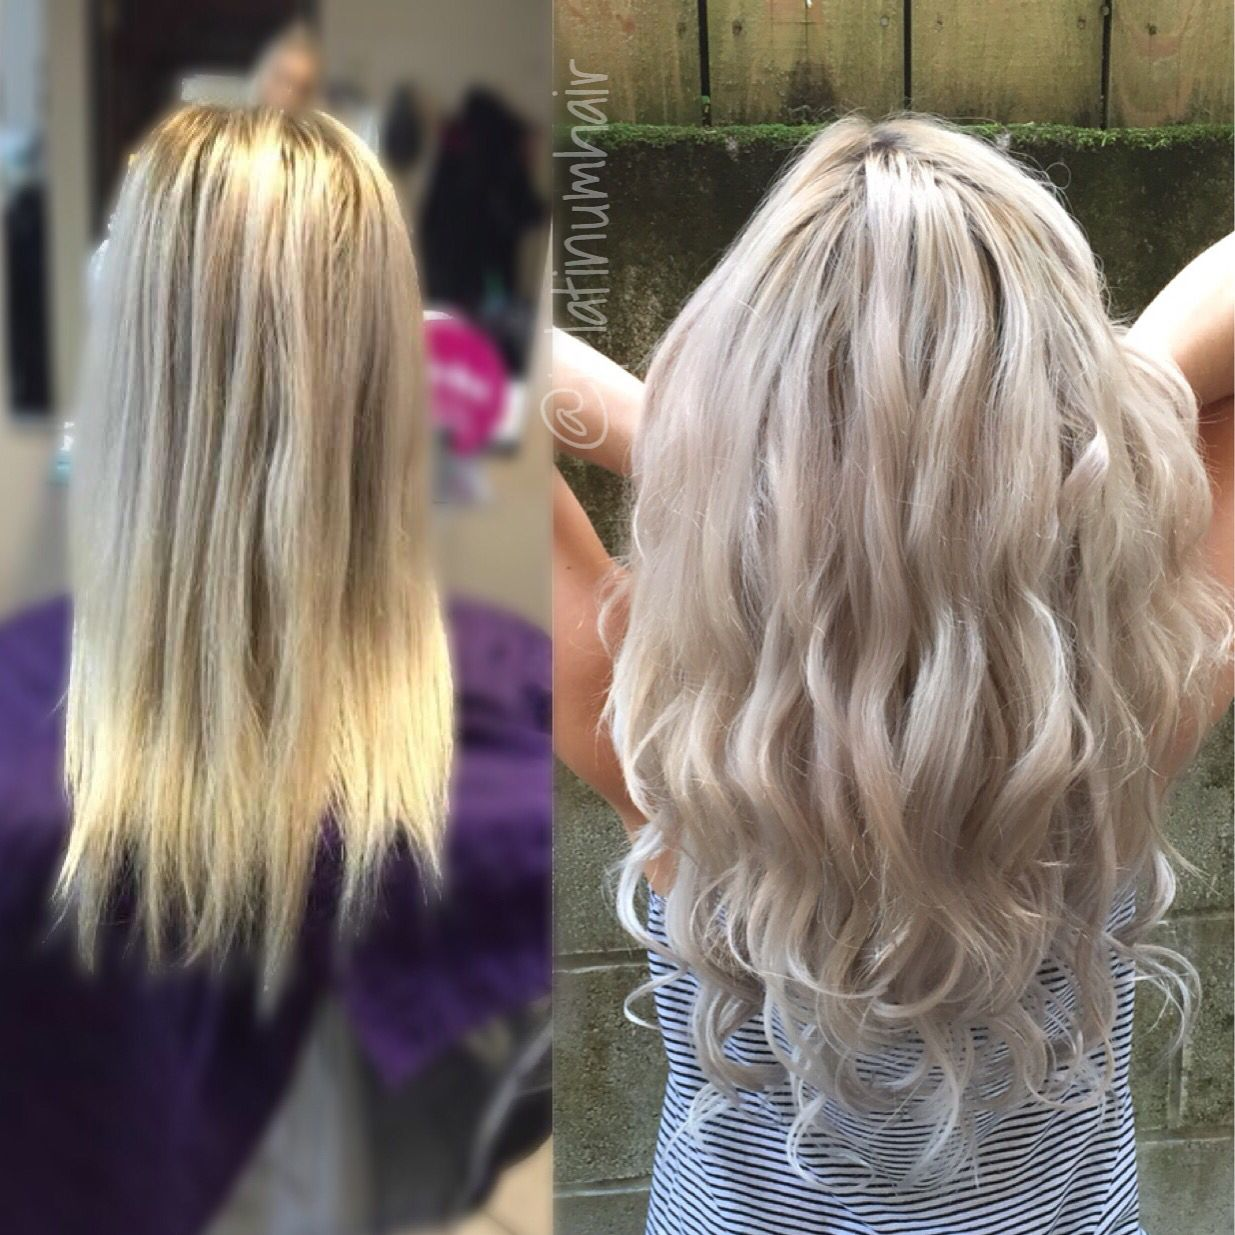 Before and after dream catchers hair extensions love this before and after dream catchers hair extensions love this pmusecretfo Gallery